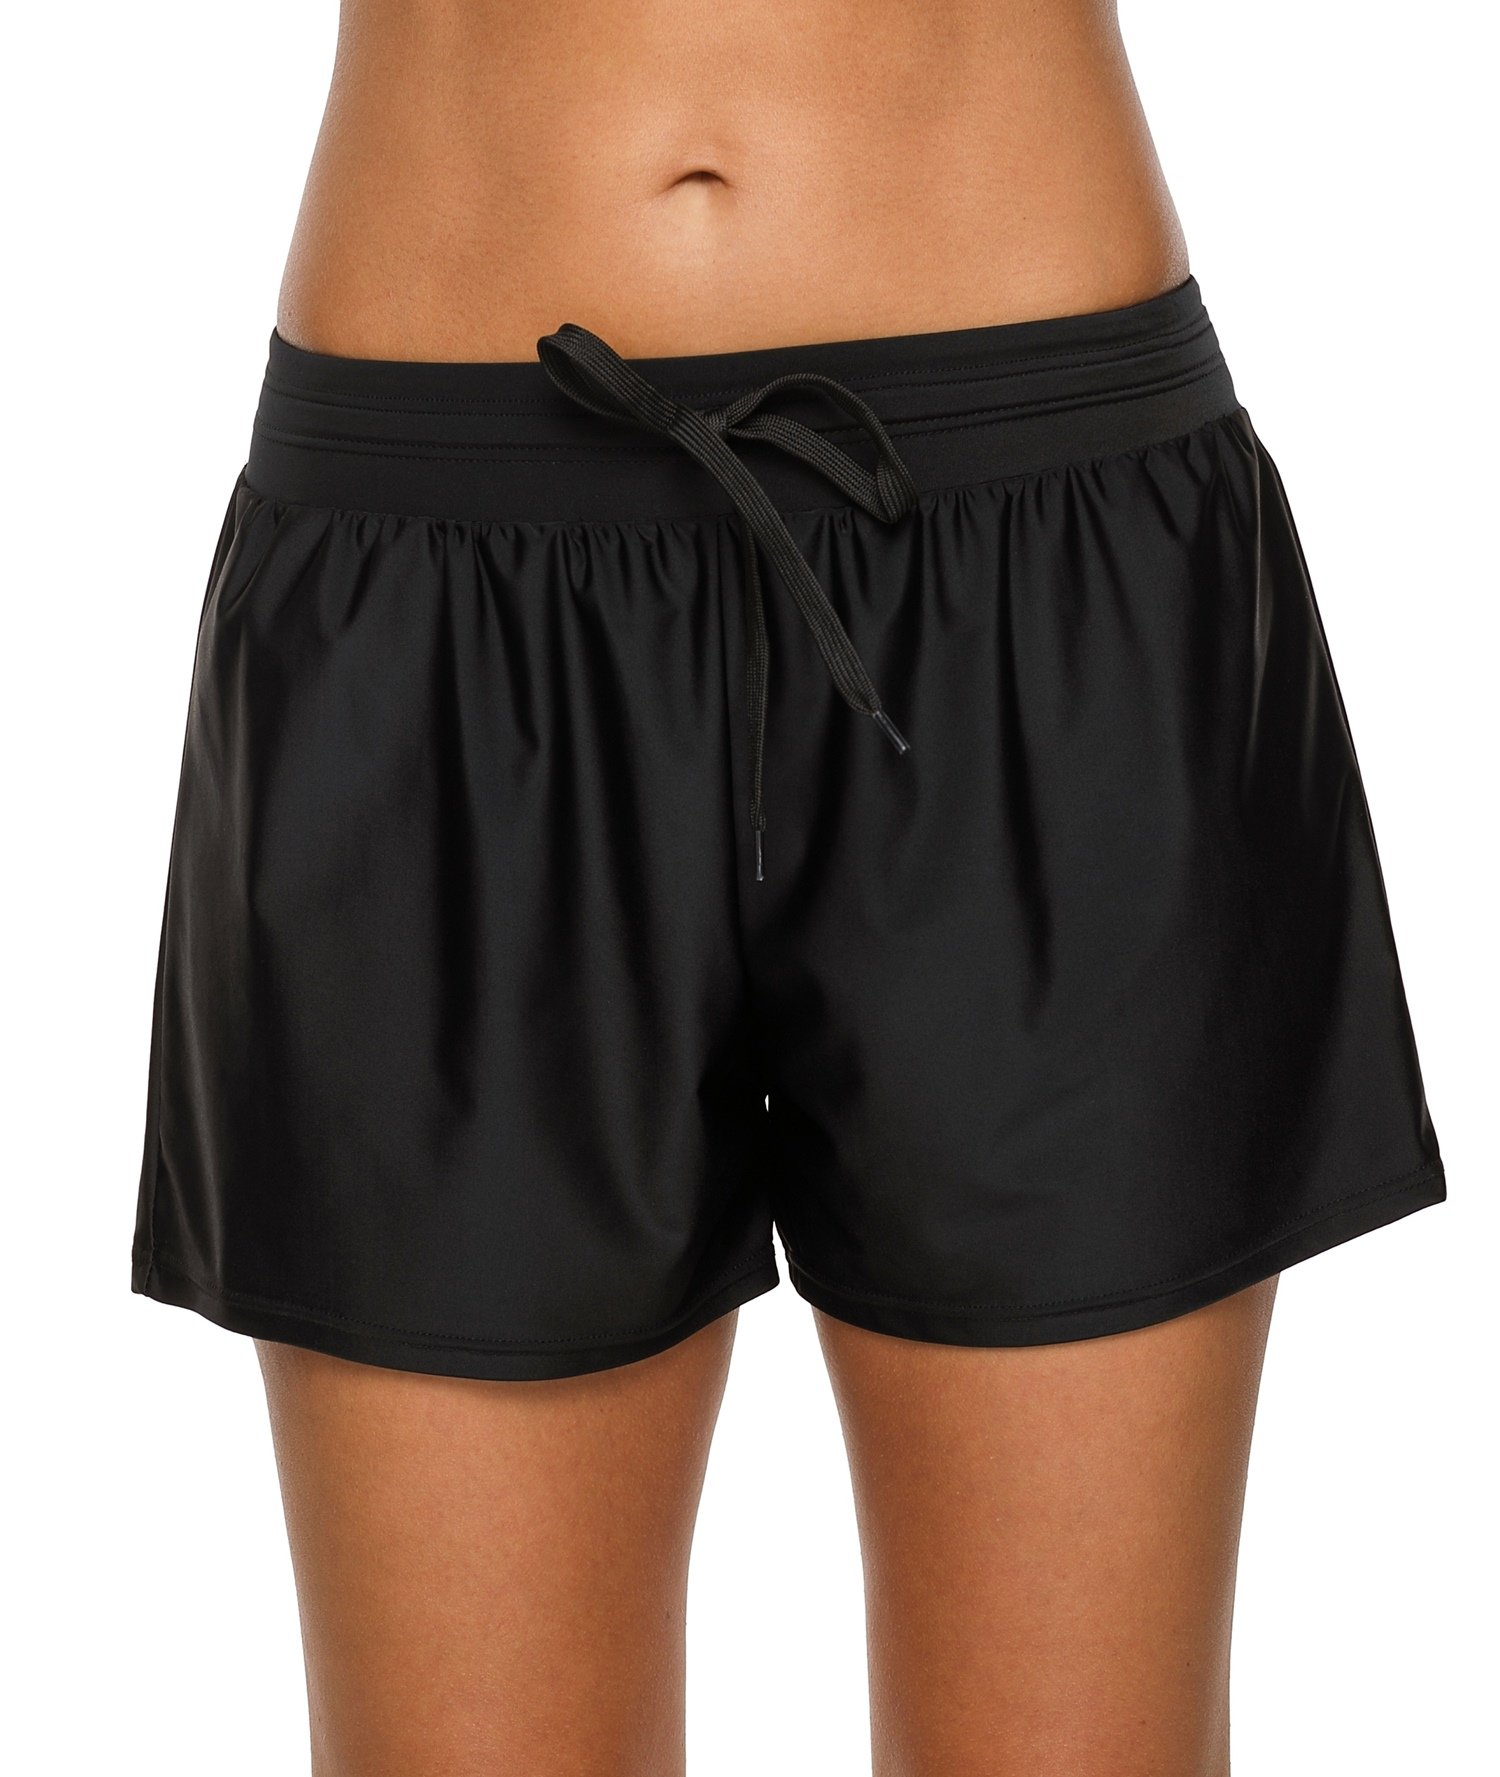 ATTRACO Womens Swimsuit Shorts Loose Fit Solid Drawstring Beach Boradshorts Large